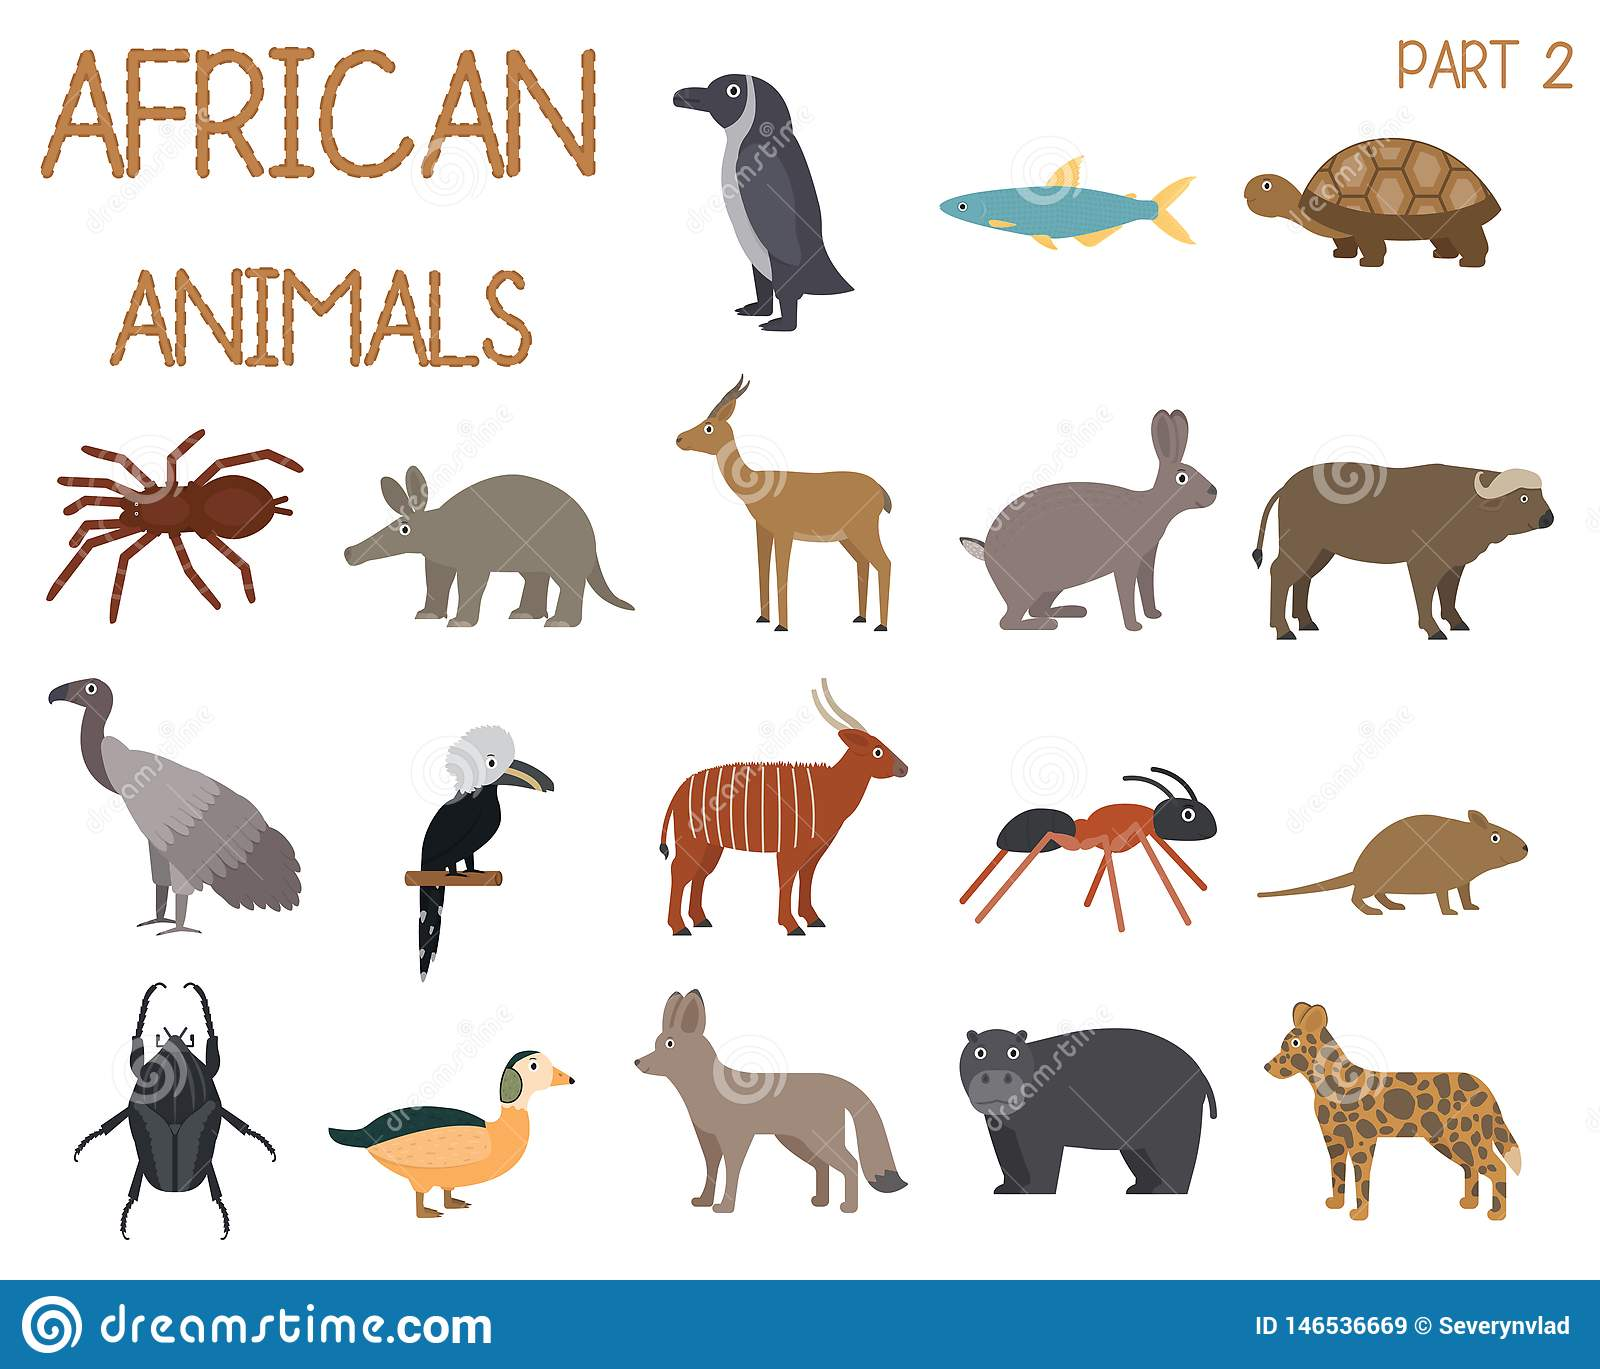 African animals set of icons in flat style, African fauna, dwarf goose, african vulture, buffalo, gazelle dorkas, etc.